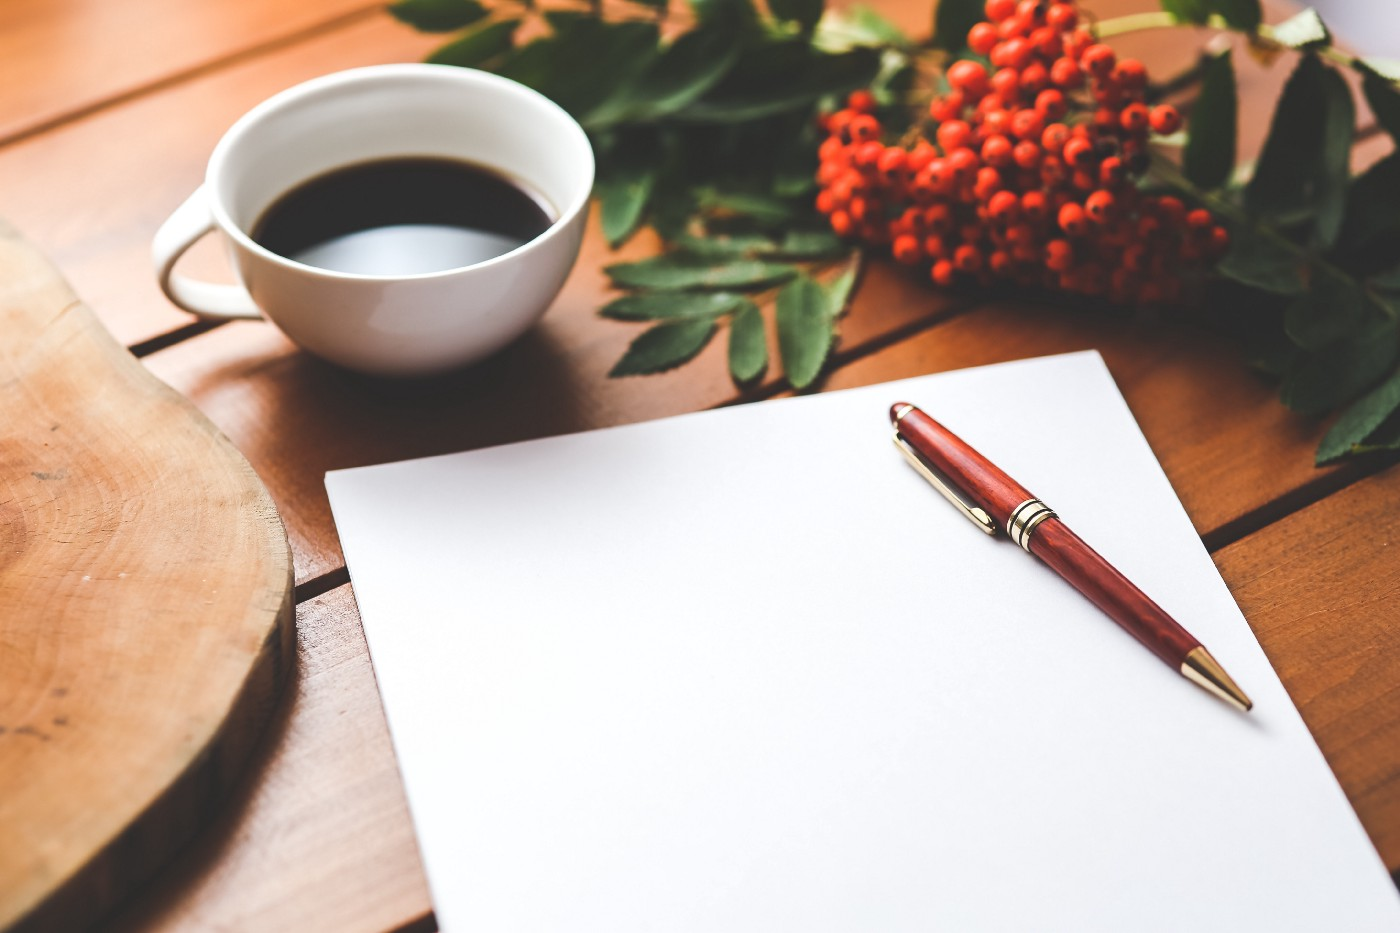 Piece of paper, a pen, and a cup of coffee.